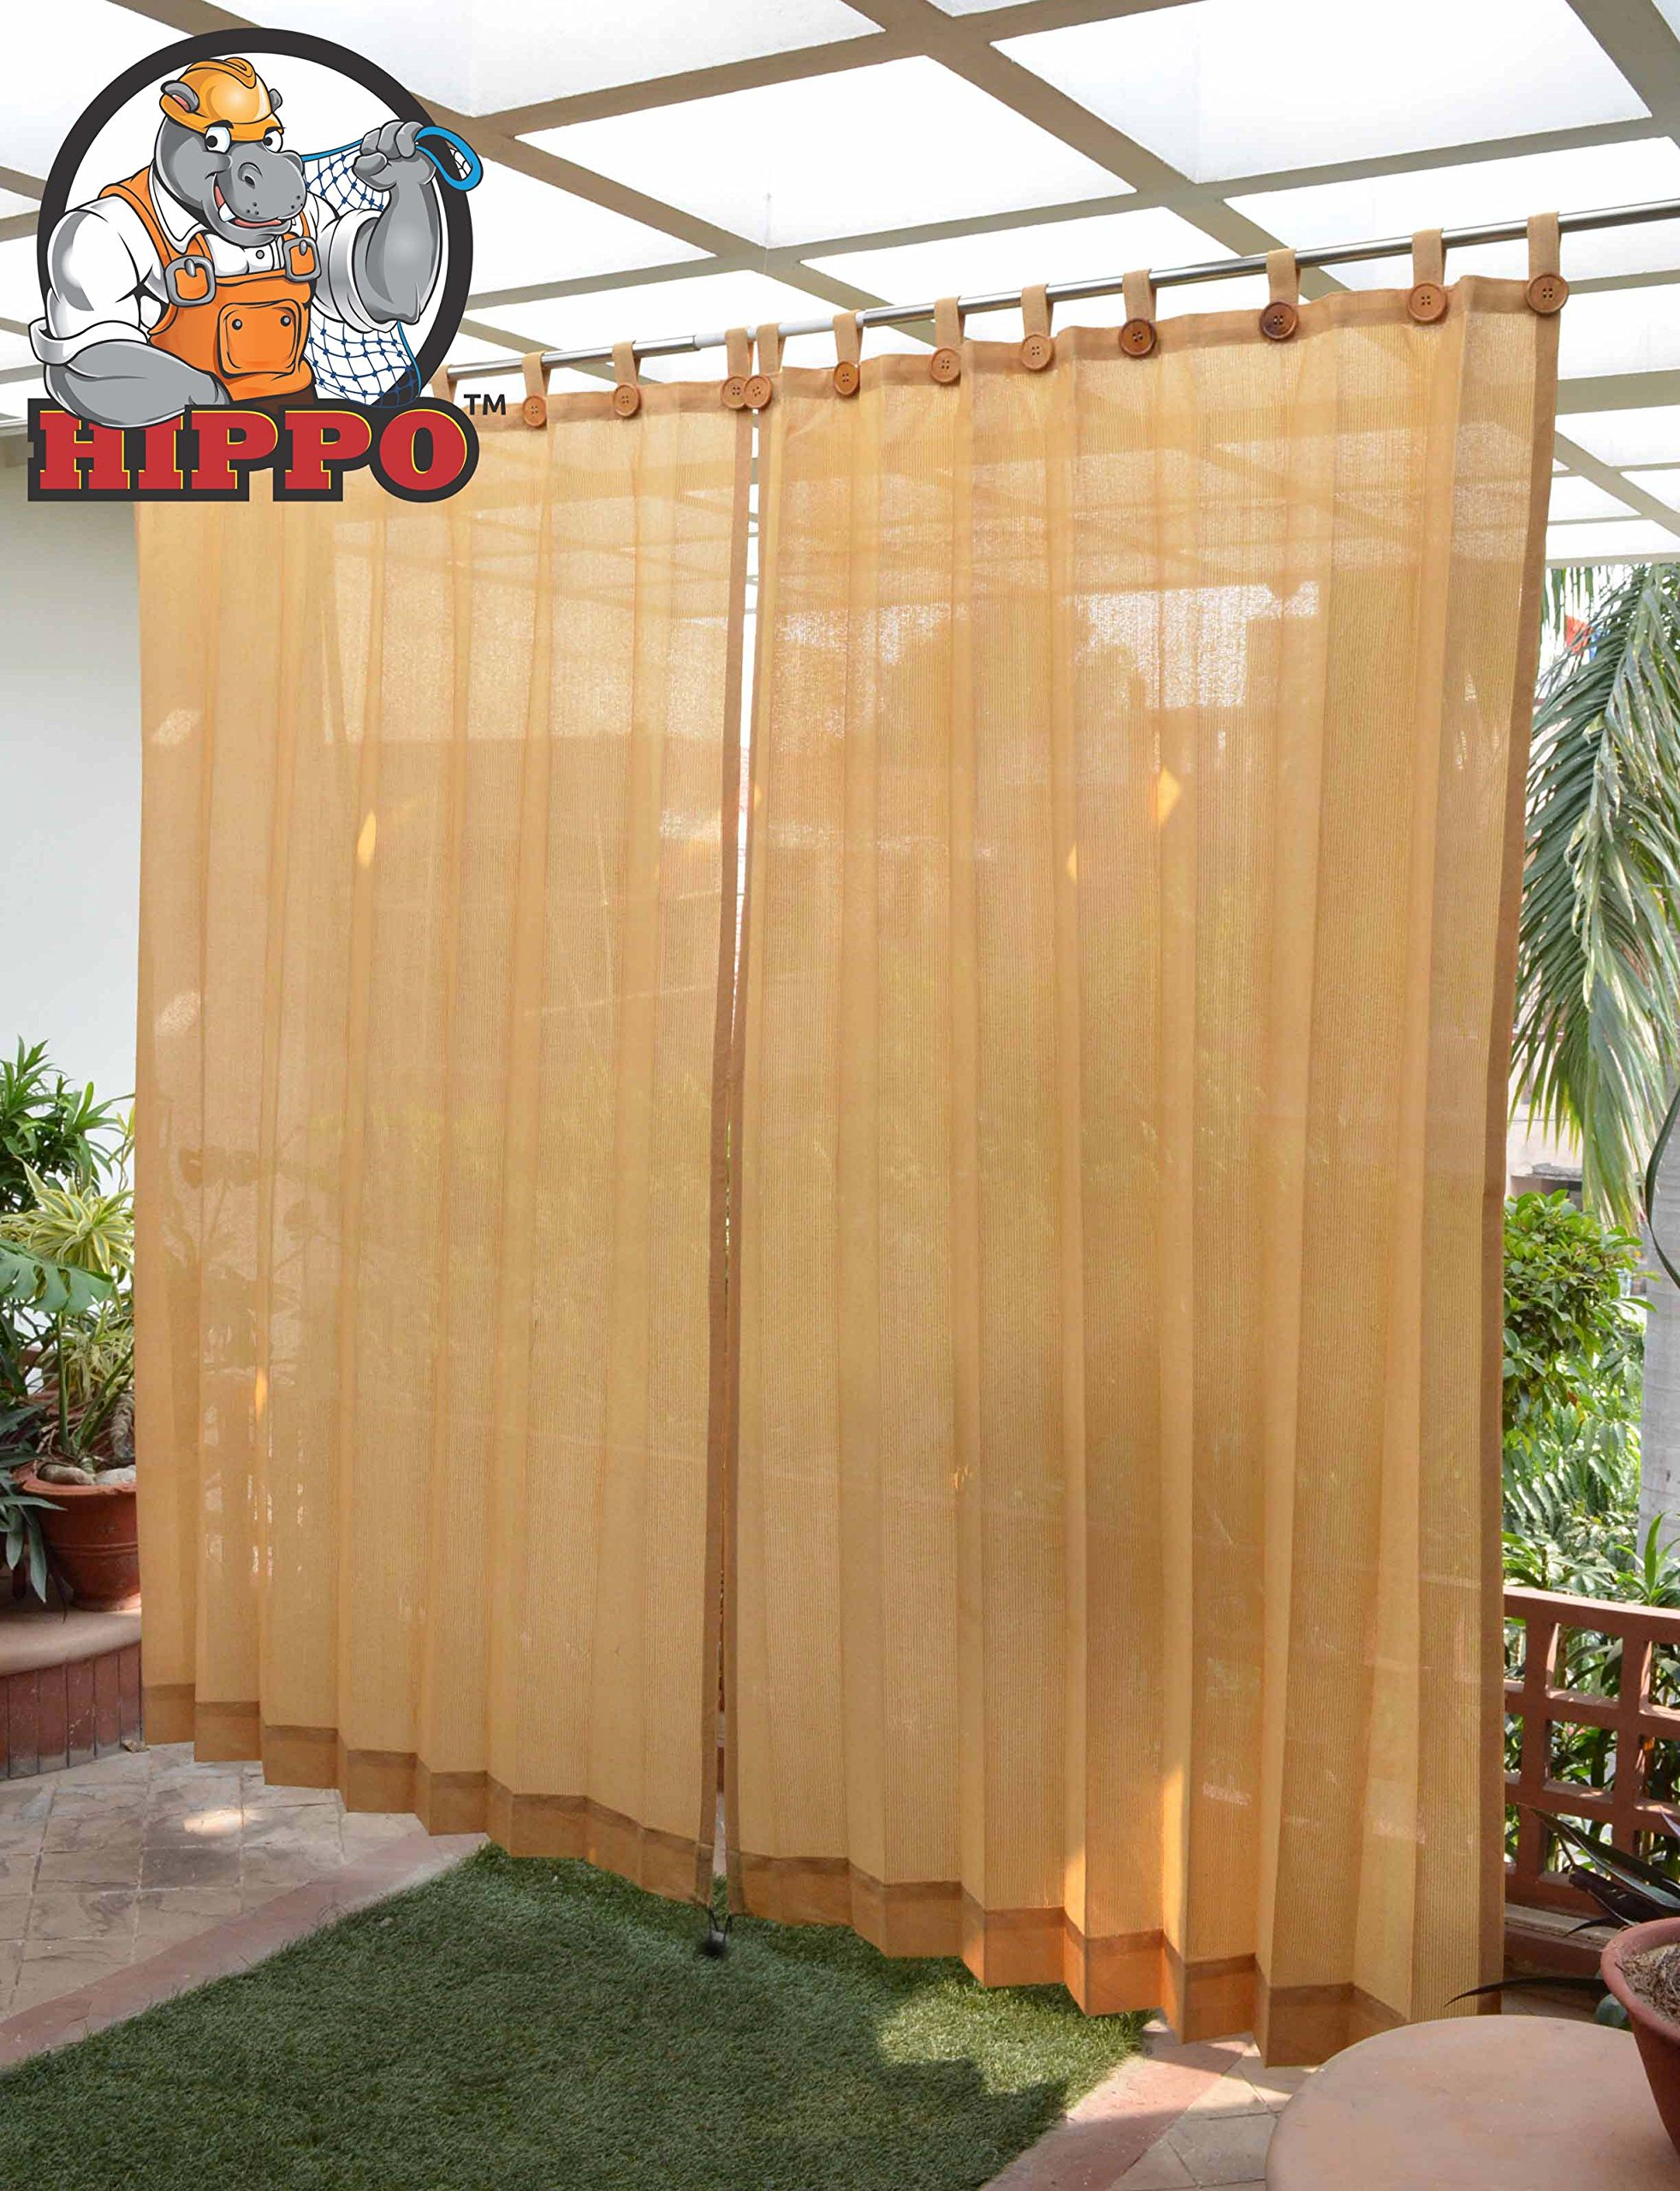 HIPPO Outdoor Loop Curtains - (80-85%) Sun Blockage - Medium Duty - Beige Colour - Full Size (2 Nos. x 4.5 Ft W x 7.5 Ft L product image